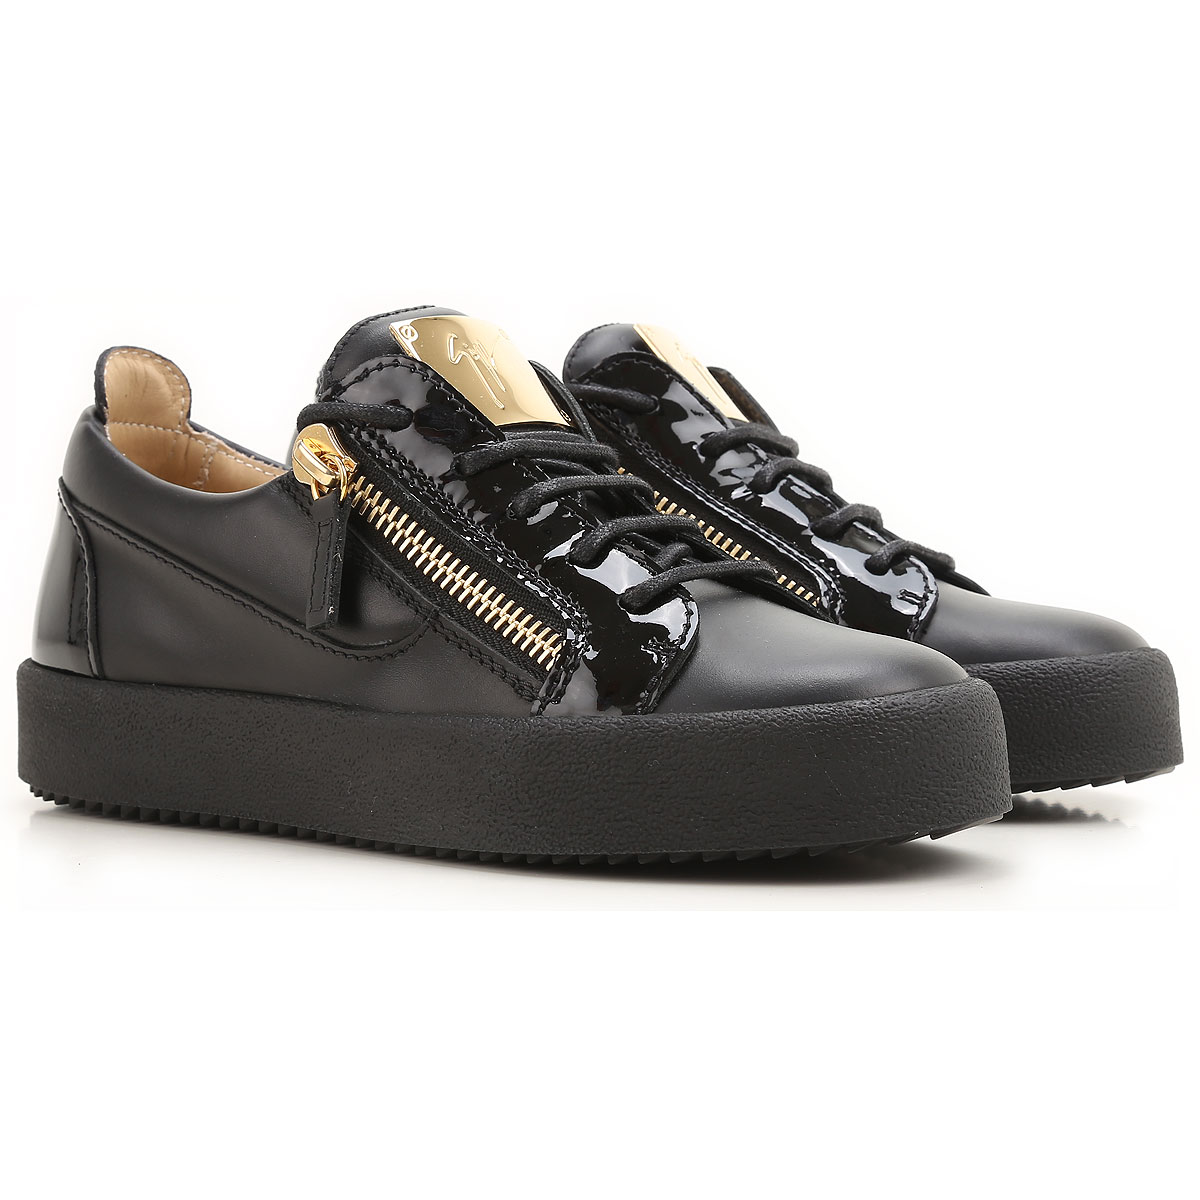 Giuseppe Zanotti Design Sneakers for Women On Sale in Outlet, Black, Leather, 2019, 5 5.5